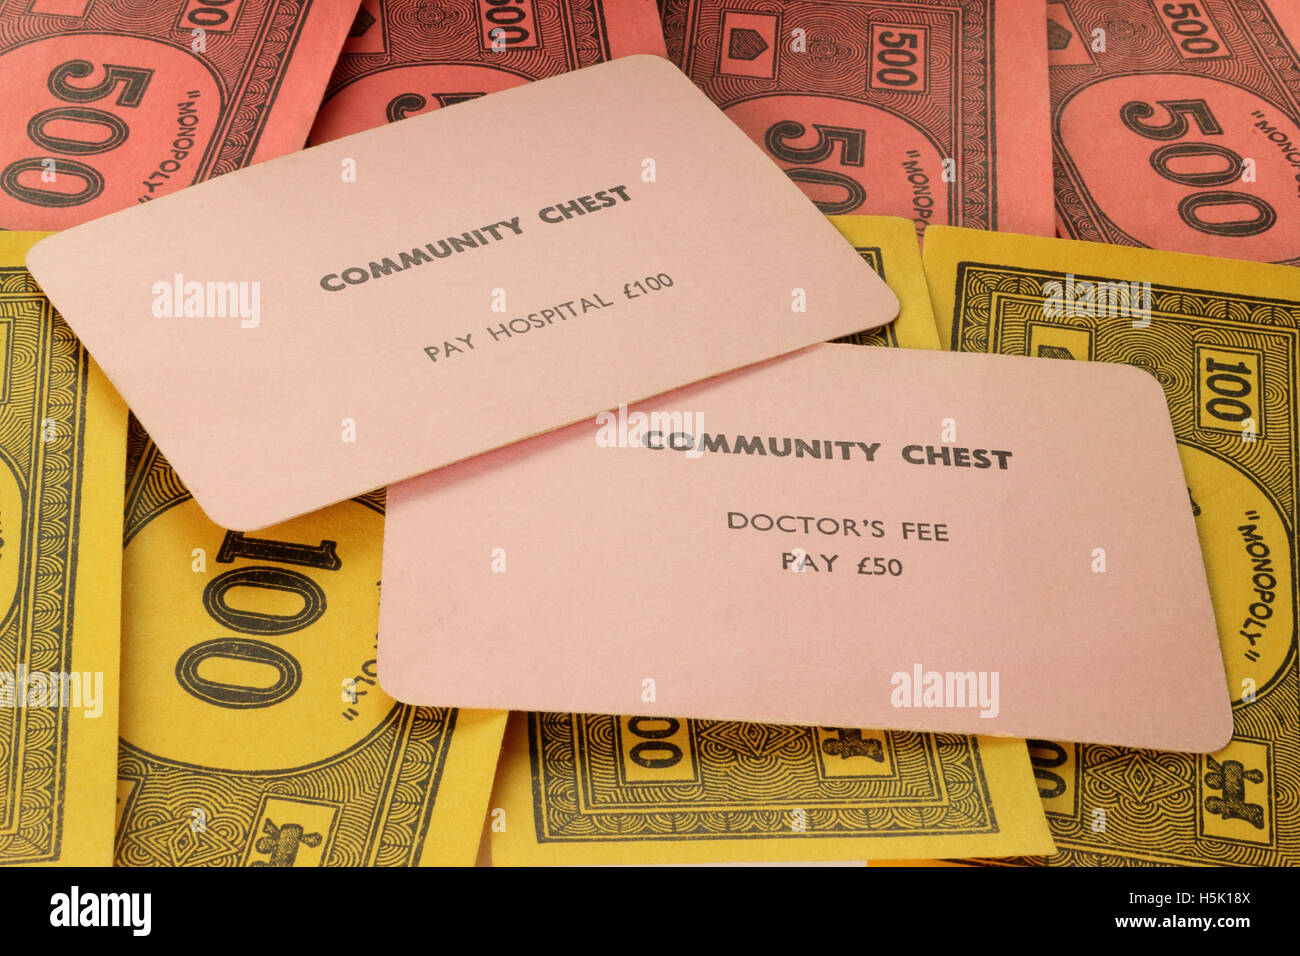 Vintage british monopoly game community chest cards for medical vintage british monopoly game community chest cards for medical fees circa 1940 bookmarktalkfo Choice Image